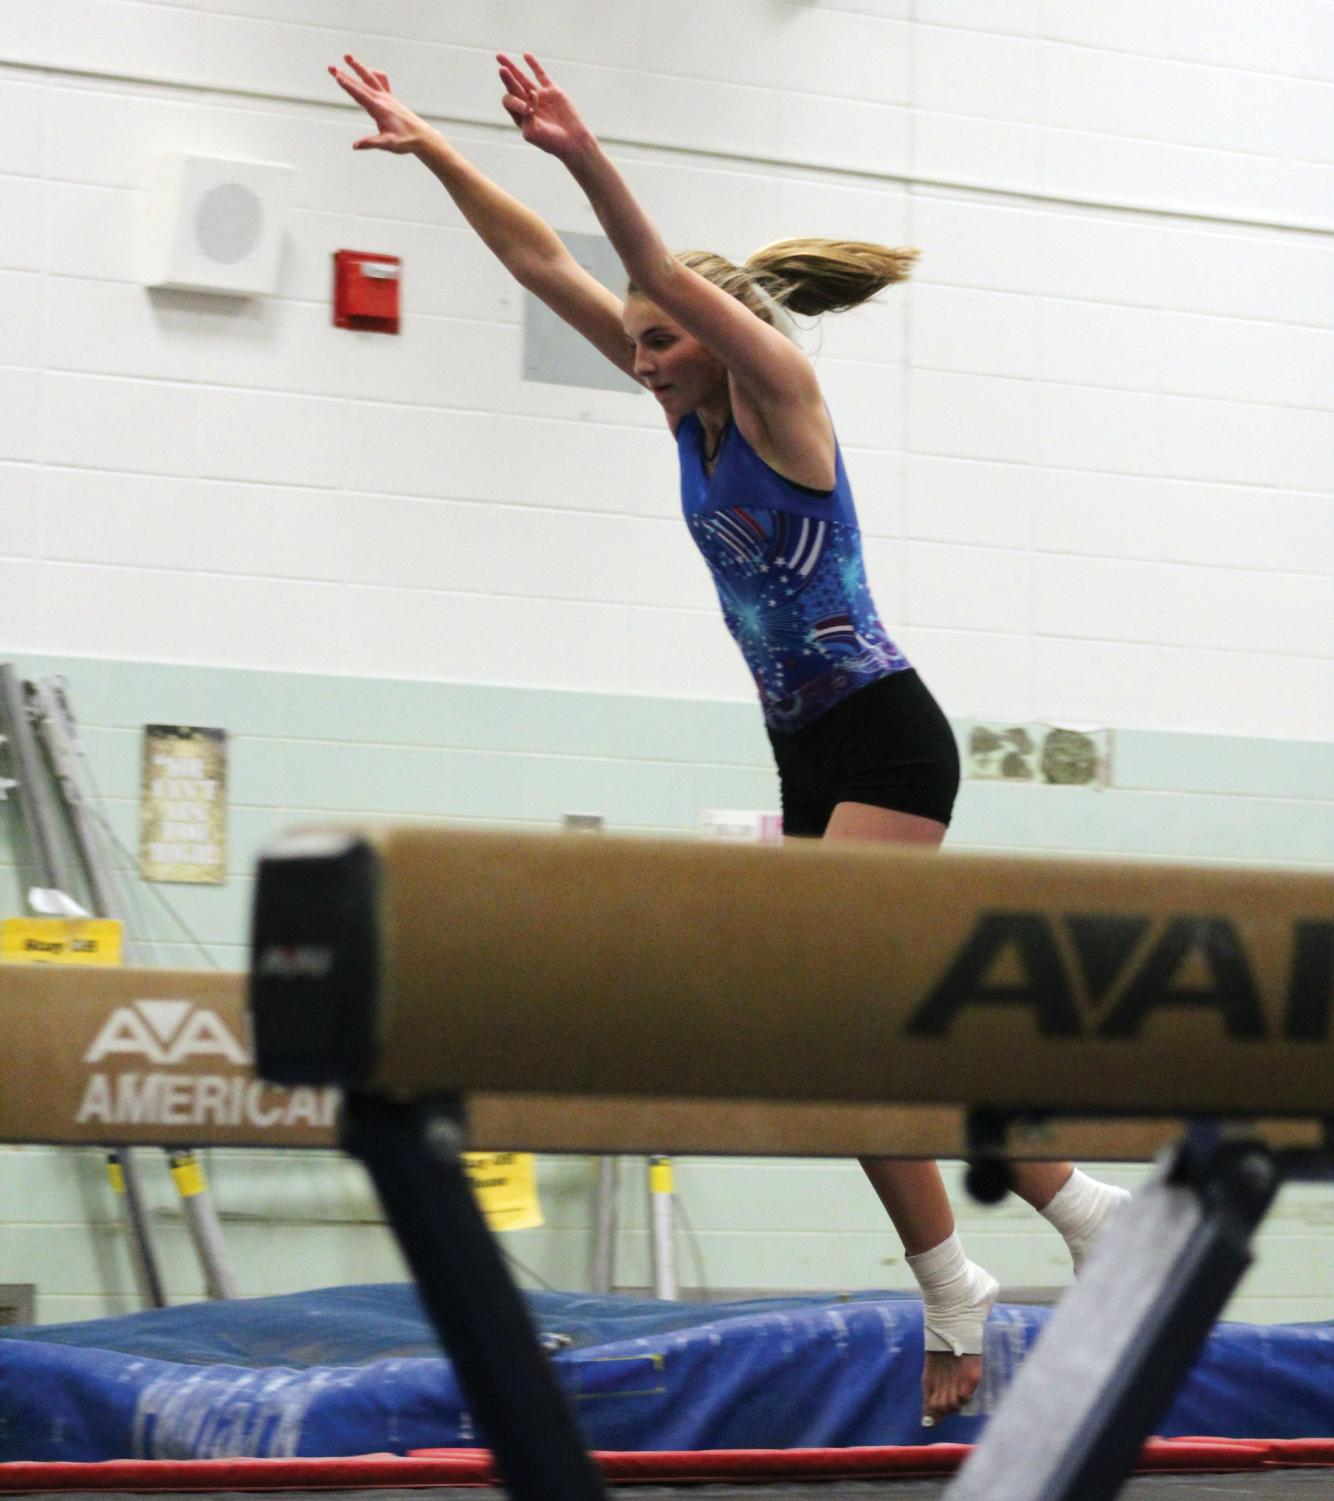 Sophomore Ryan Rasmussen prepares to complete a tumbling pass at gymnastics practice Nov. 25. The gymnastics team's first meet is at 11 a.m. Dec. 7 at White Bear Lake Area High School.